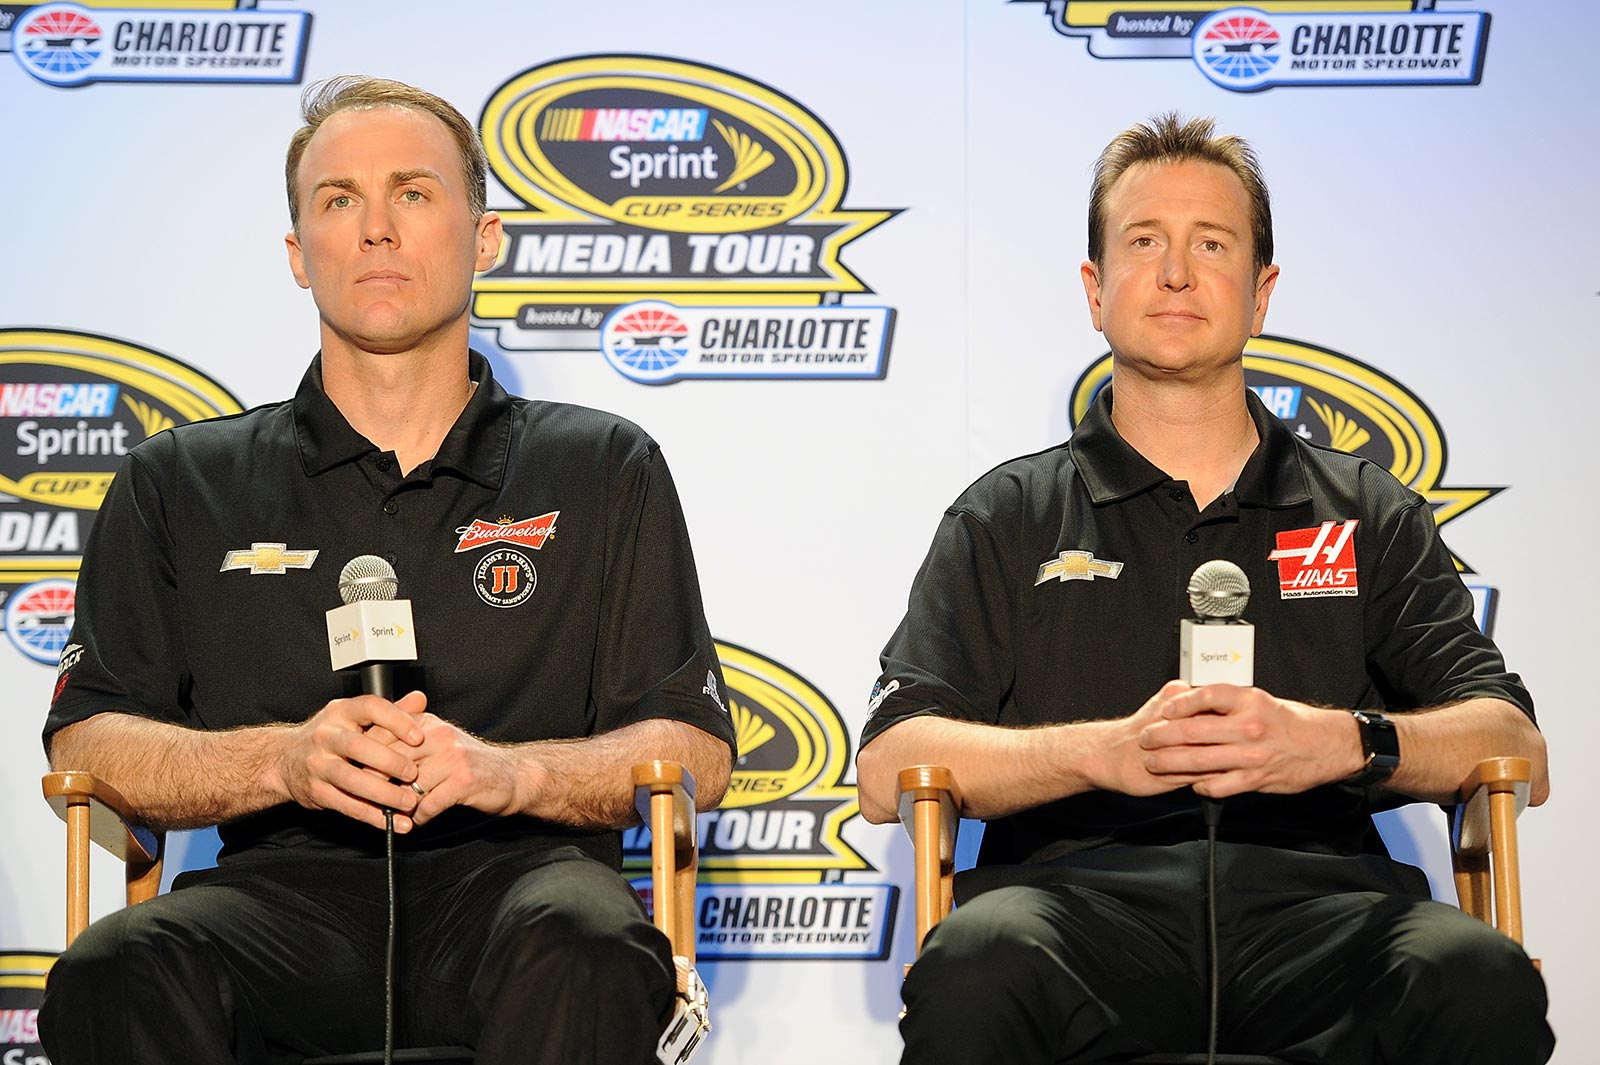 Sprint_Media_Tour_Charlotte_012714_Harvick_Busch_SHR